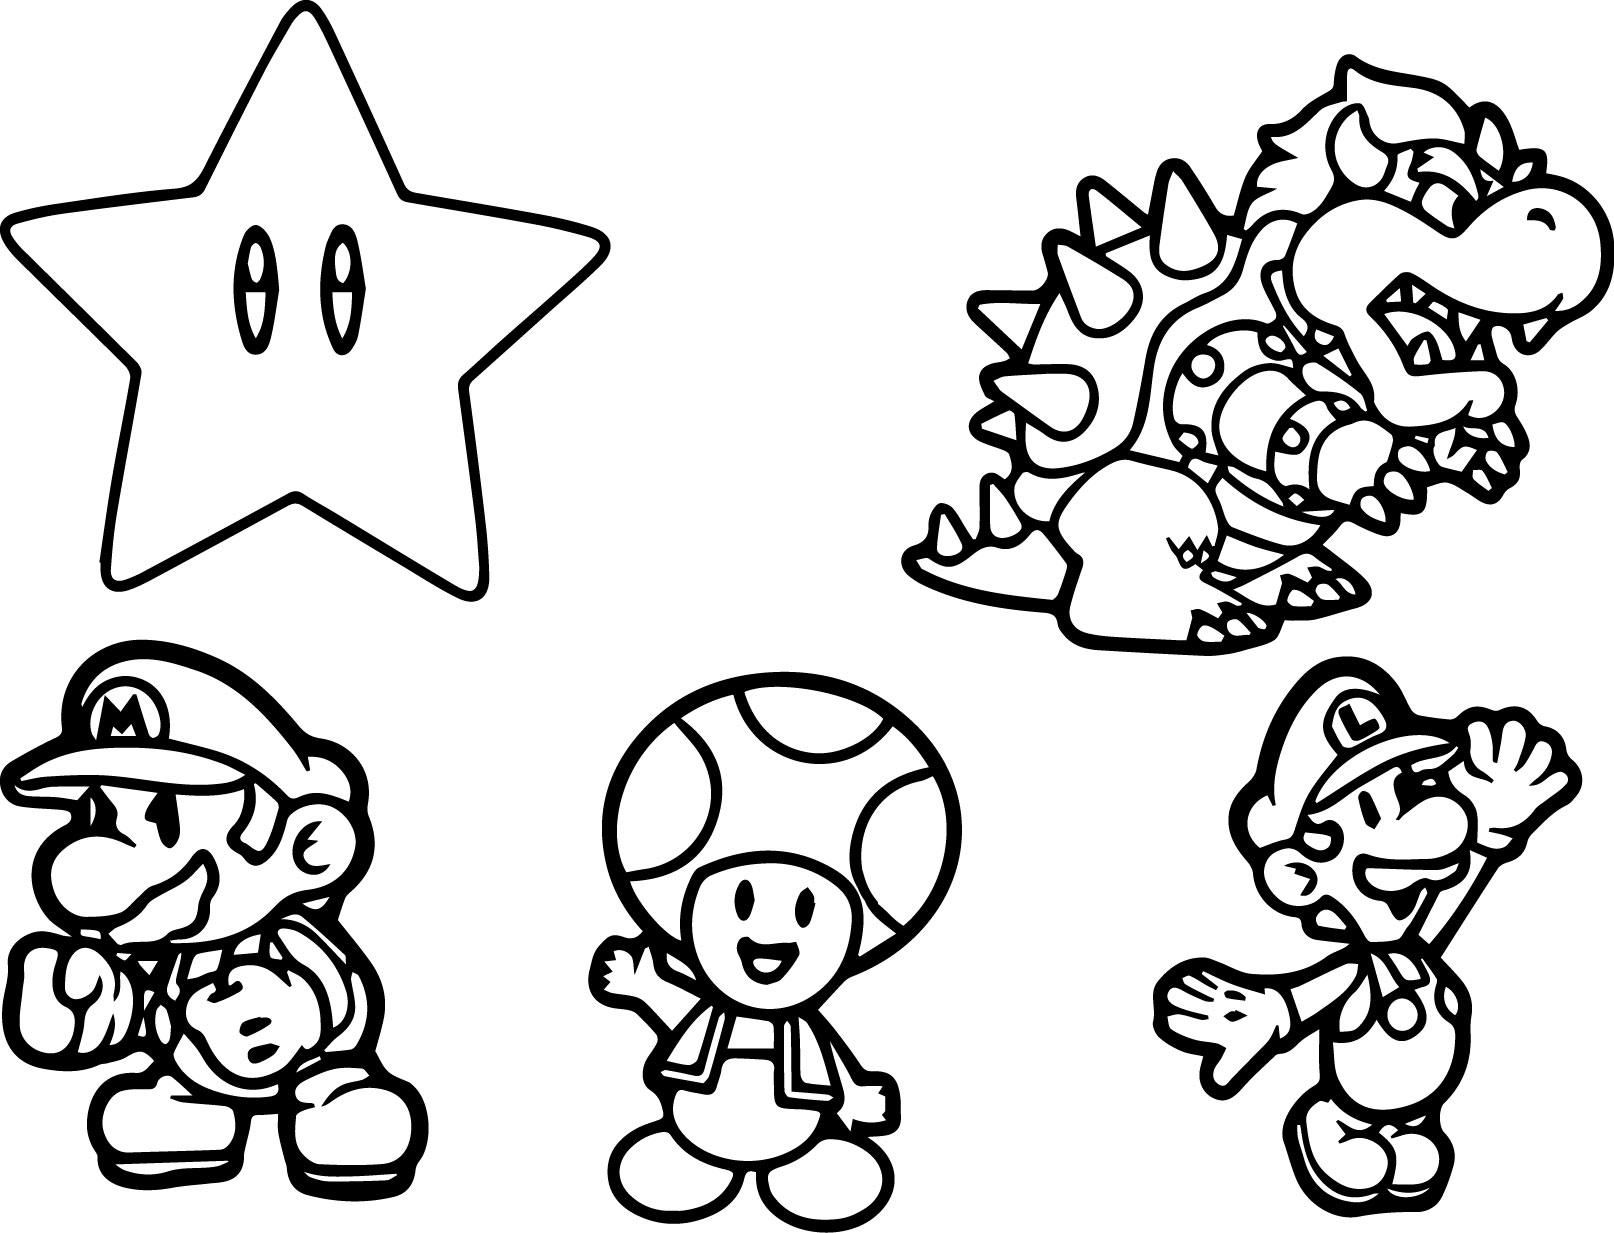 Mario Characters Coloring Pages | Coloring Pages